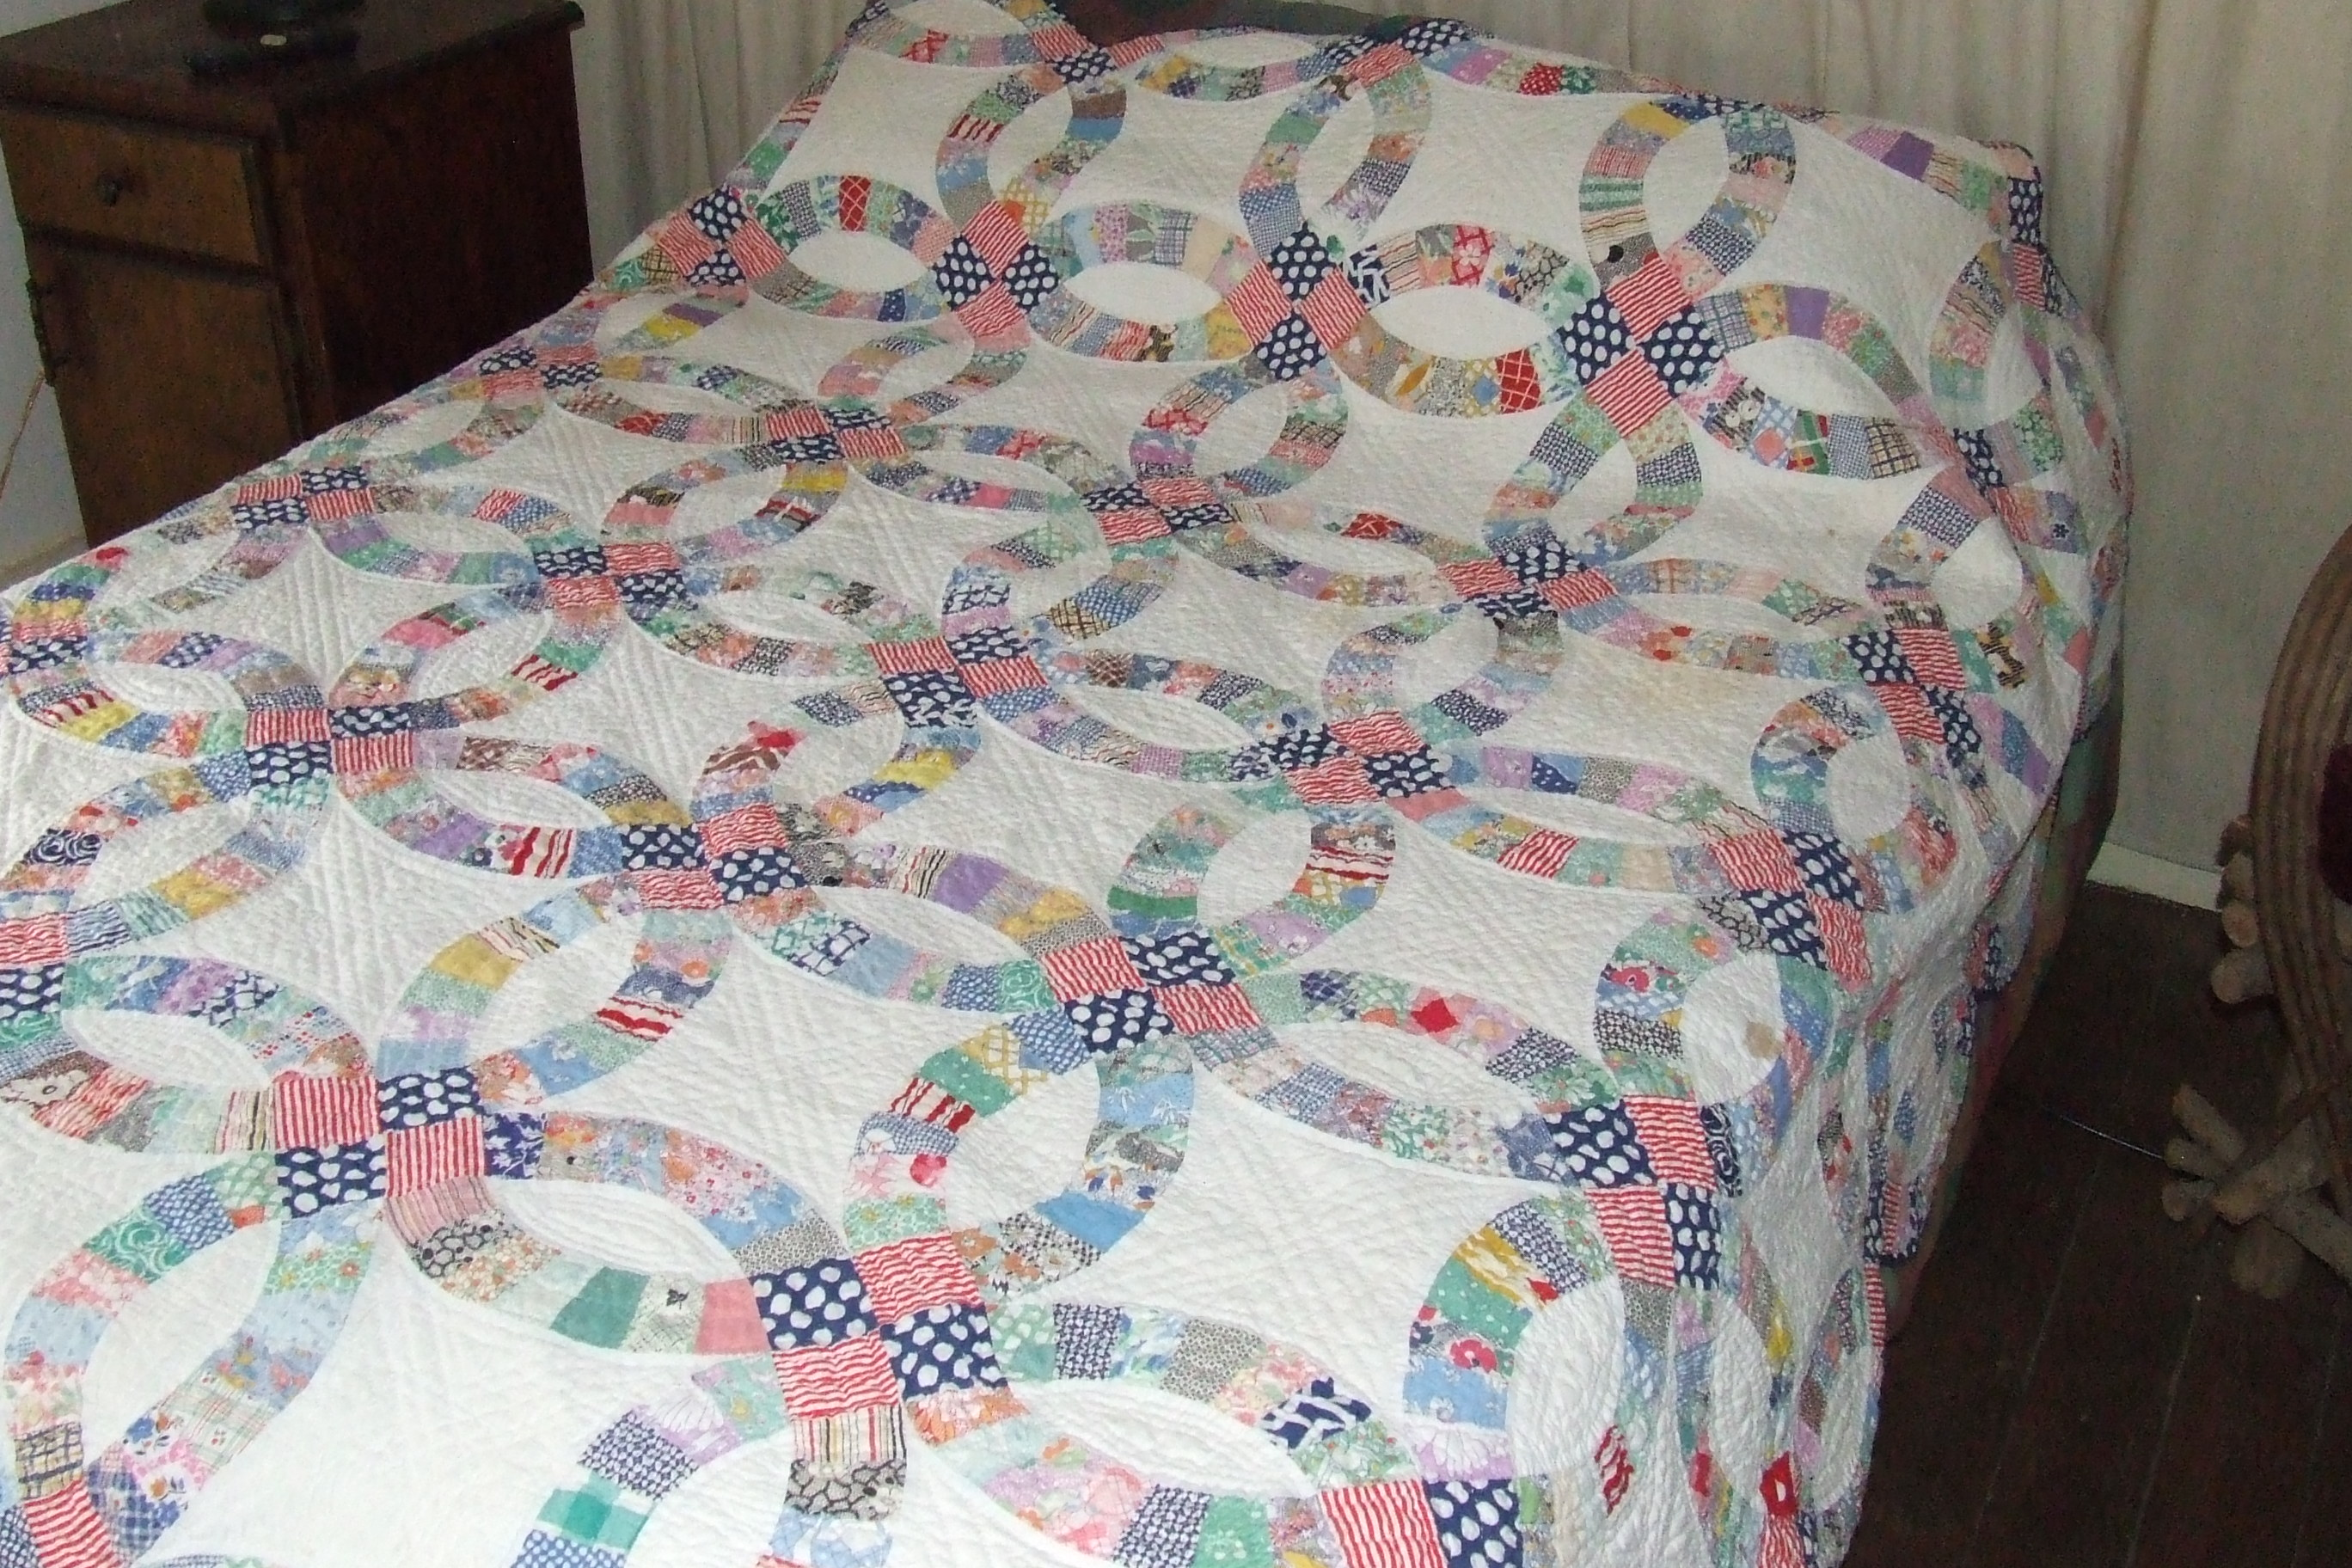 double wedding ring quilt wedding ring quilt pattern Double wedding ring quilt This